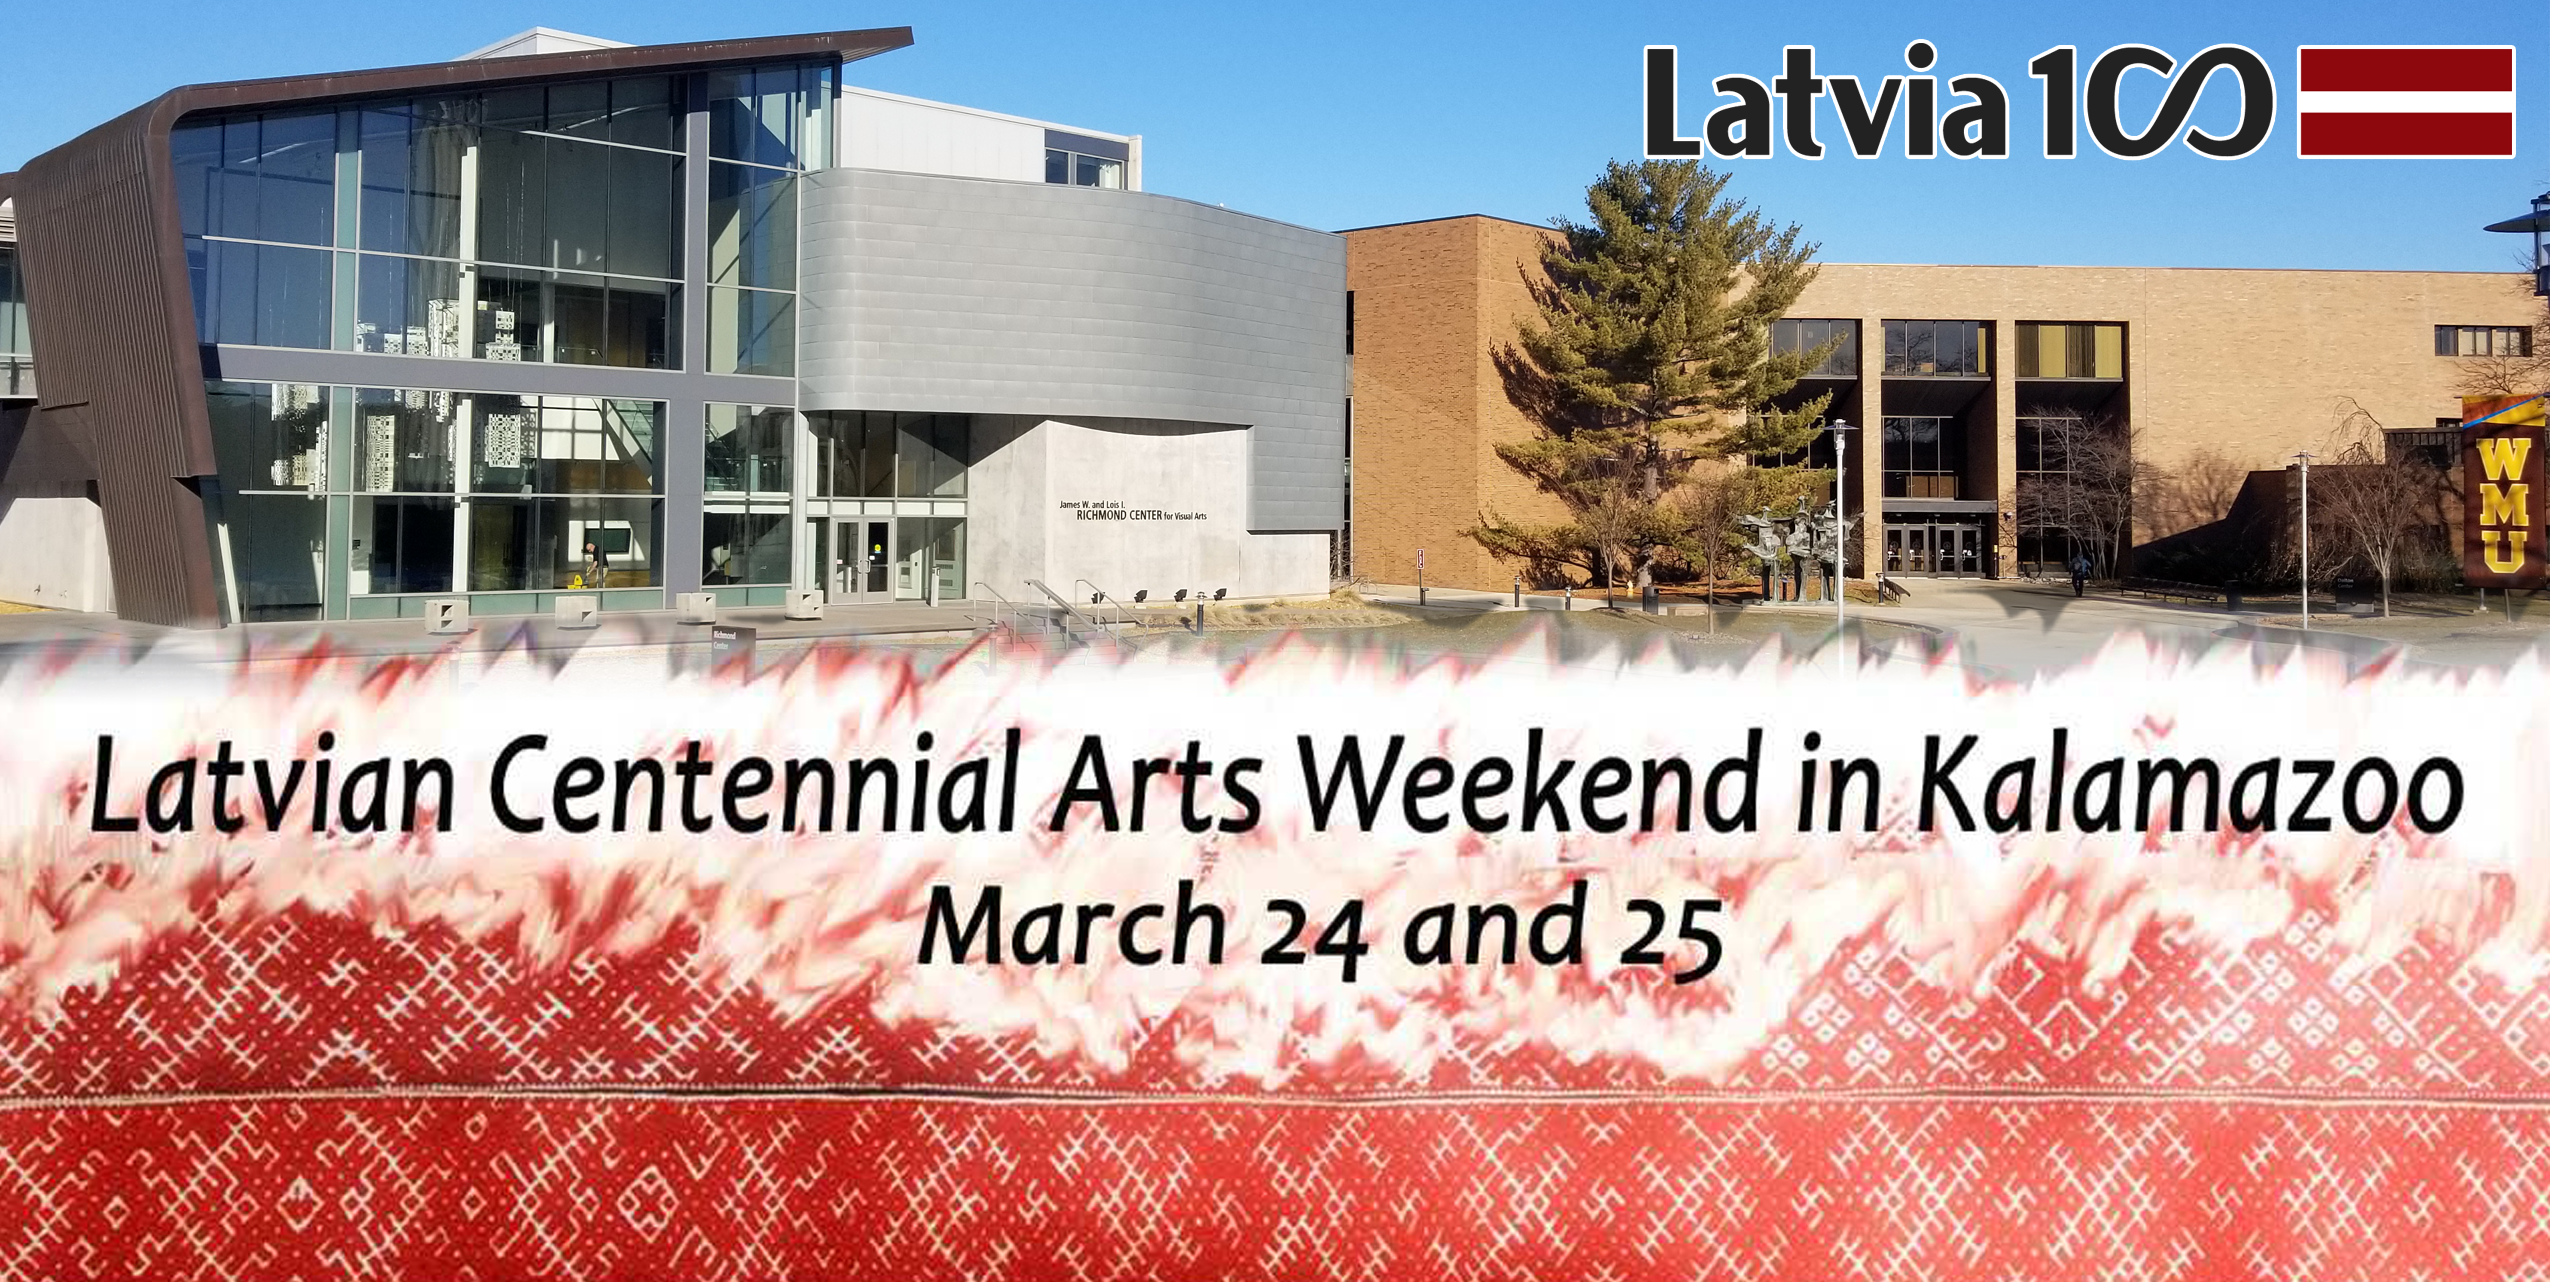 Latvian Centennial Arts Weekend in Kalamazoo